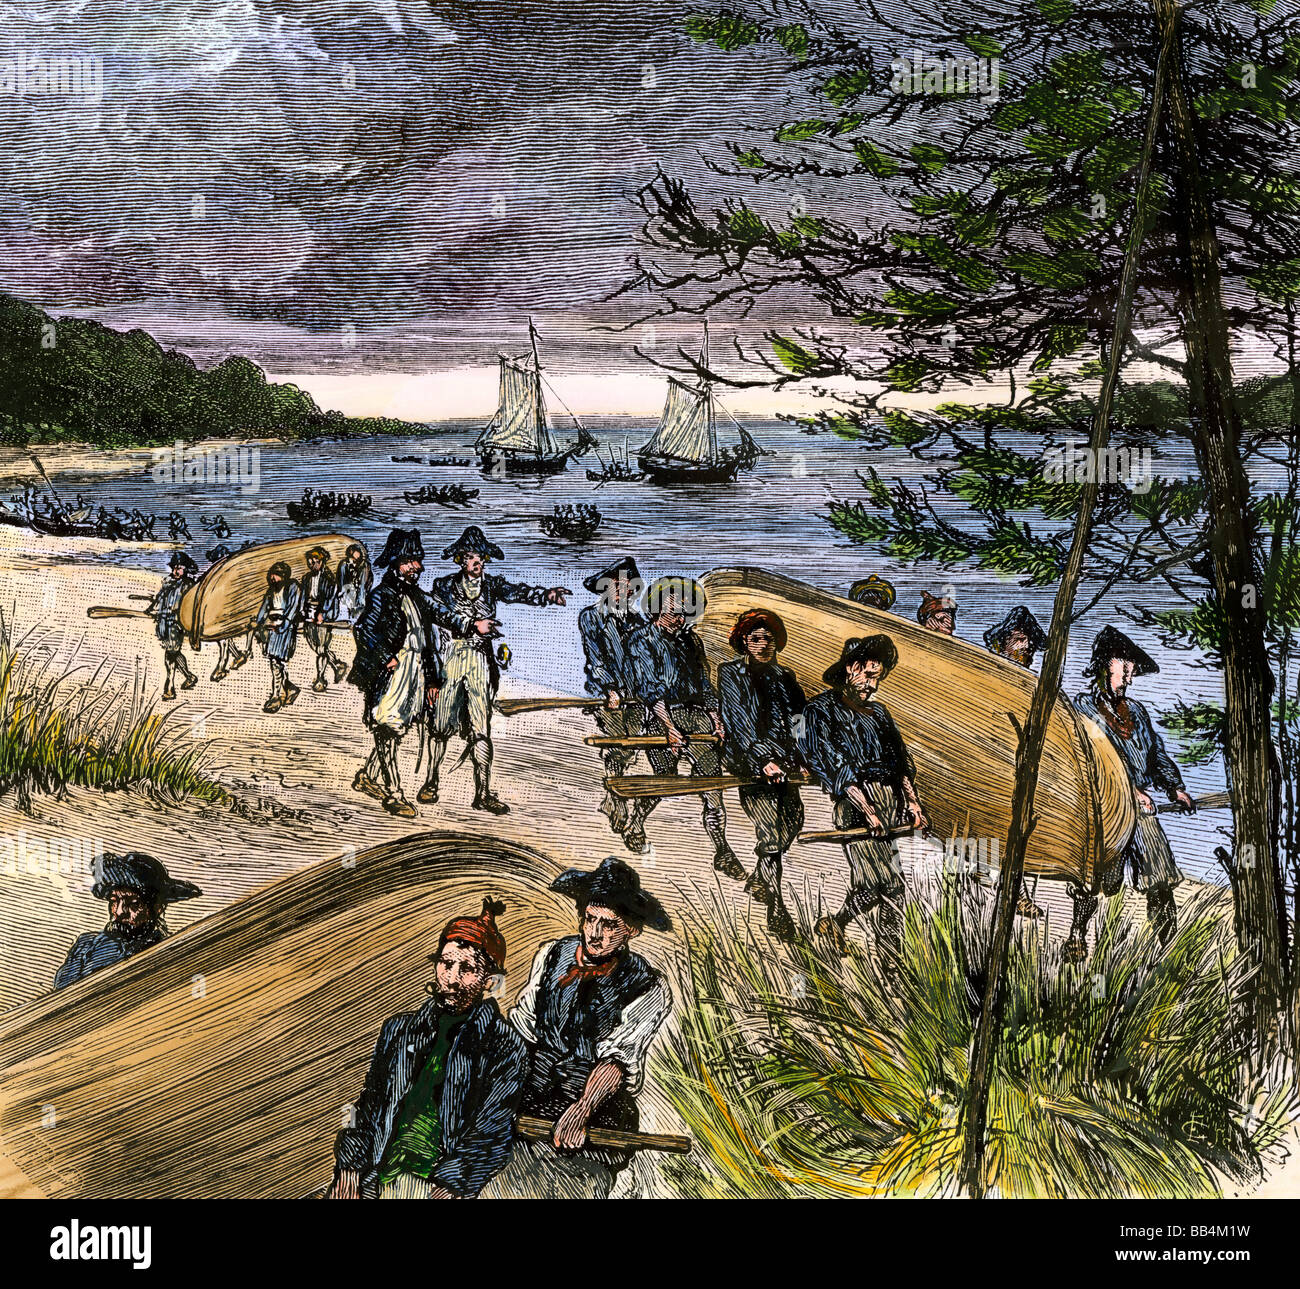 Rhode Island militia taking Sag Harbor on Long Island from the British during the Revolutionary War - Stock Image